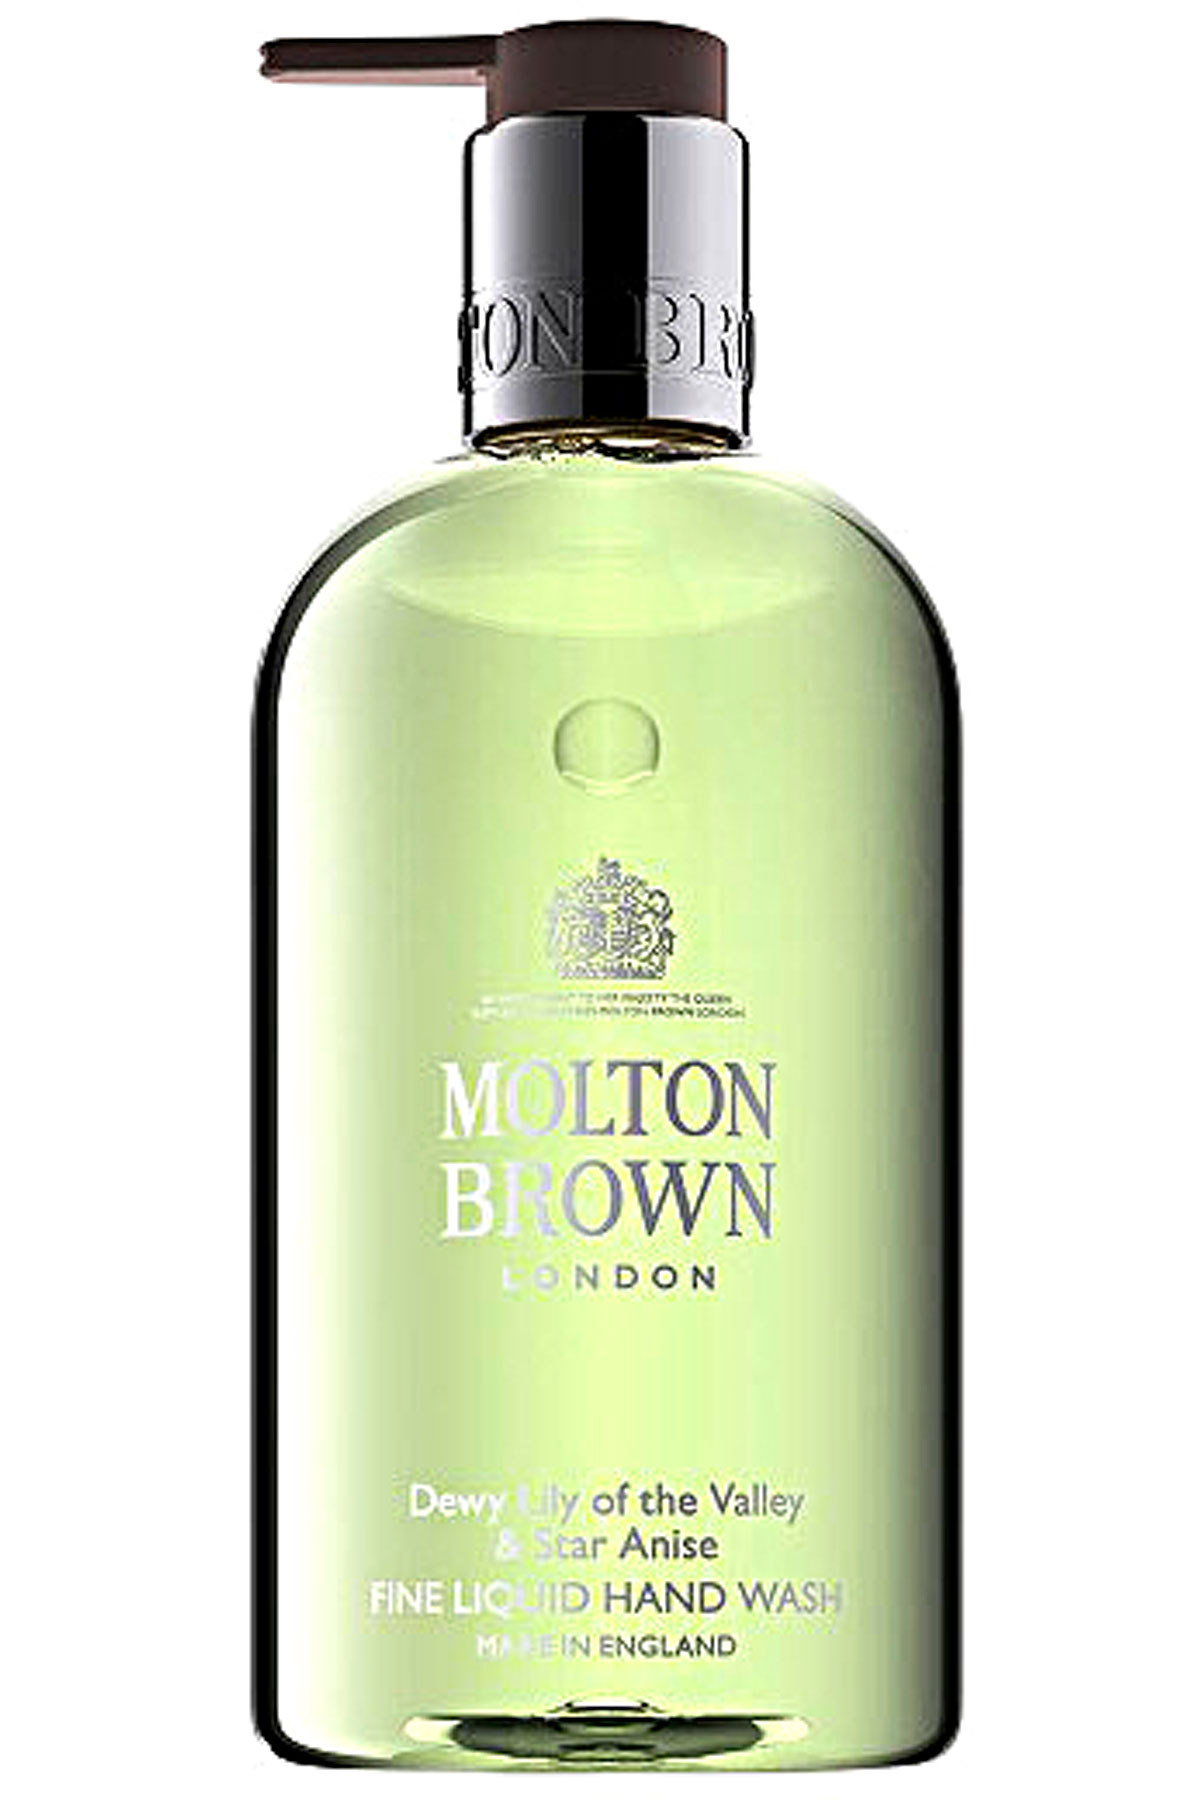 Molton Brown Beauty for Women, Dewy Lily Of The Valley & Star Anise - Liquid Hand Wash - 300 Ml, 2019, 300 ml